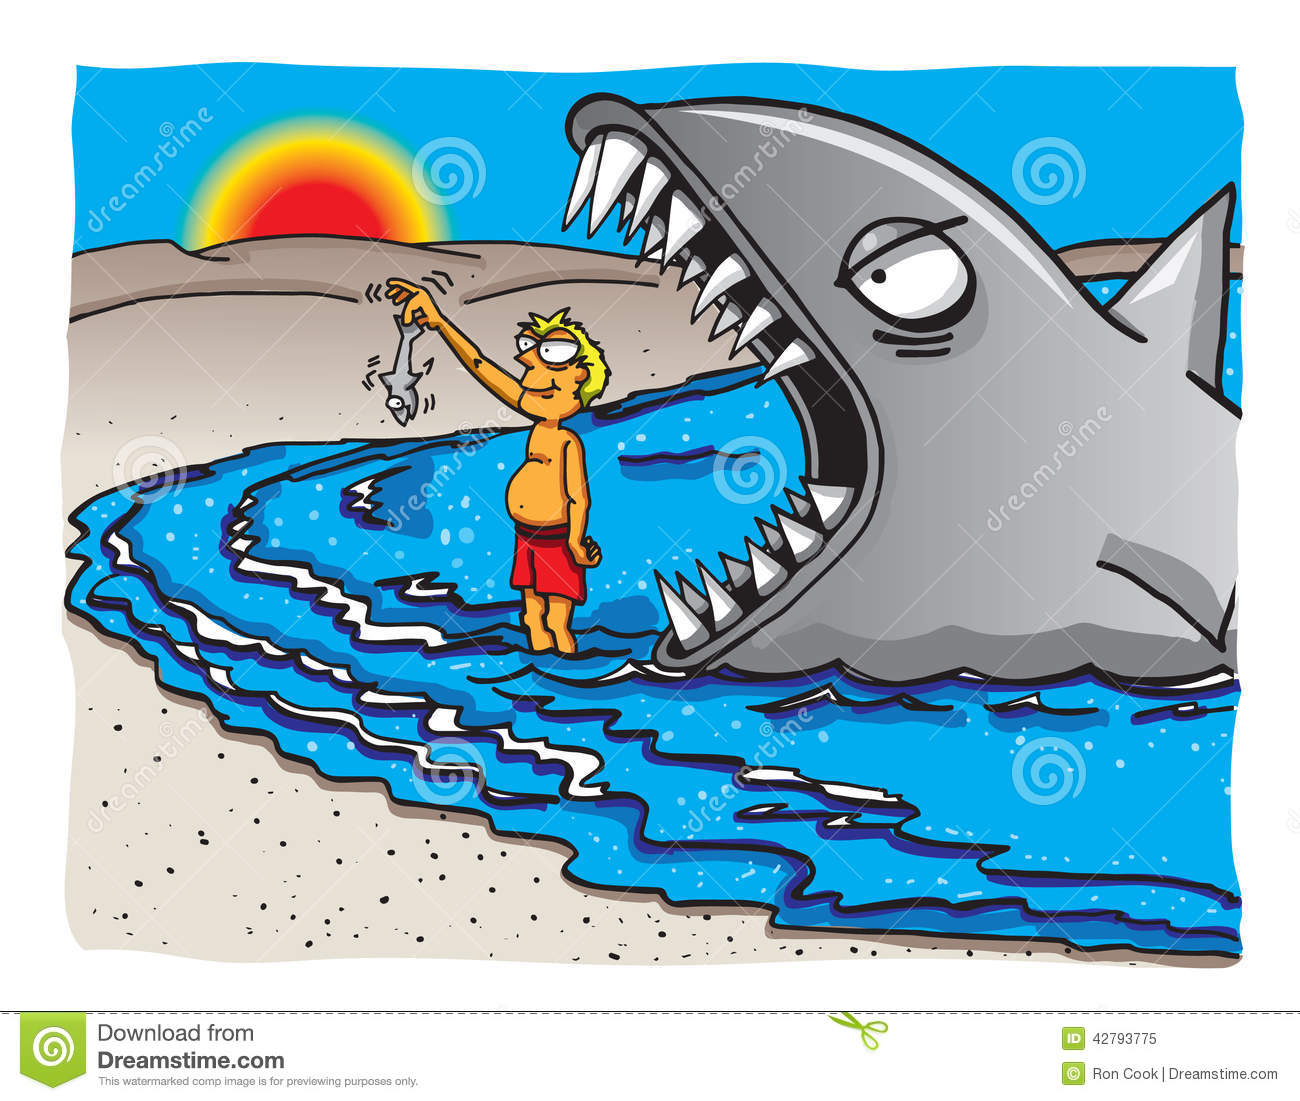 Shark eating a fish cartoon the image for Dreaming of eating fish